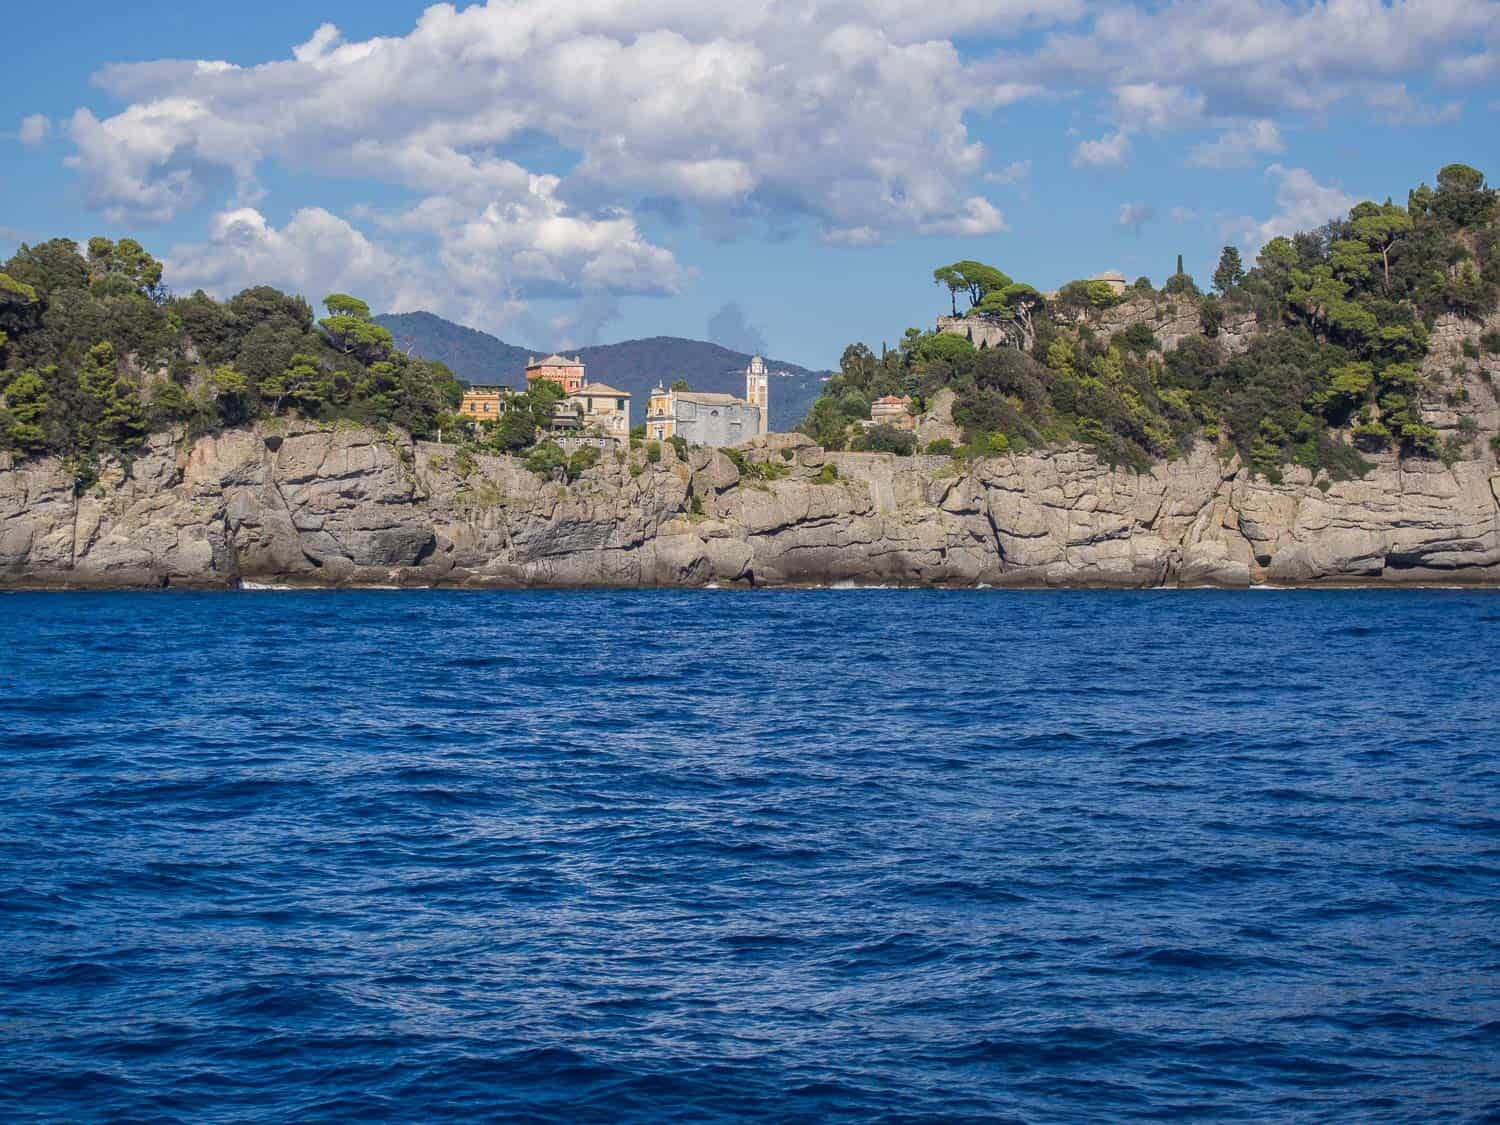 The other side of Portofino from the ferry